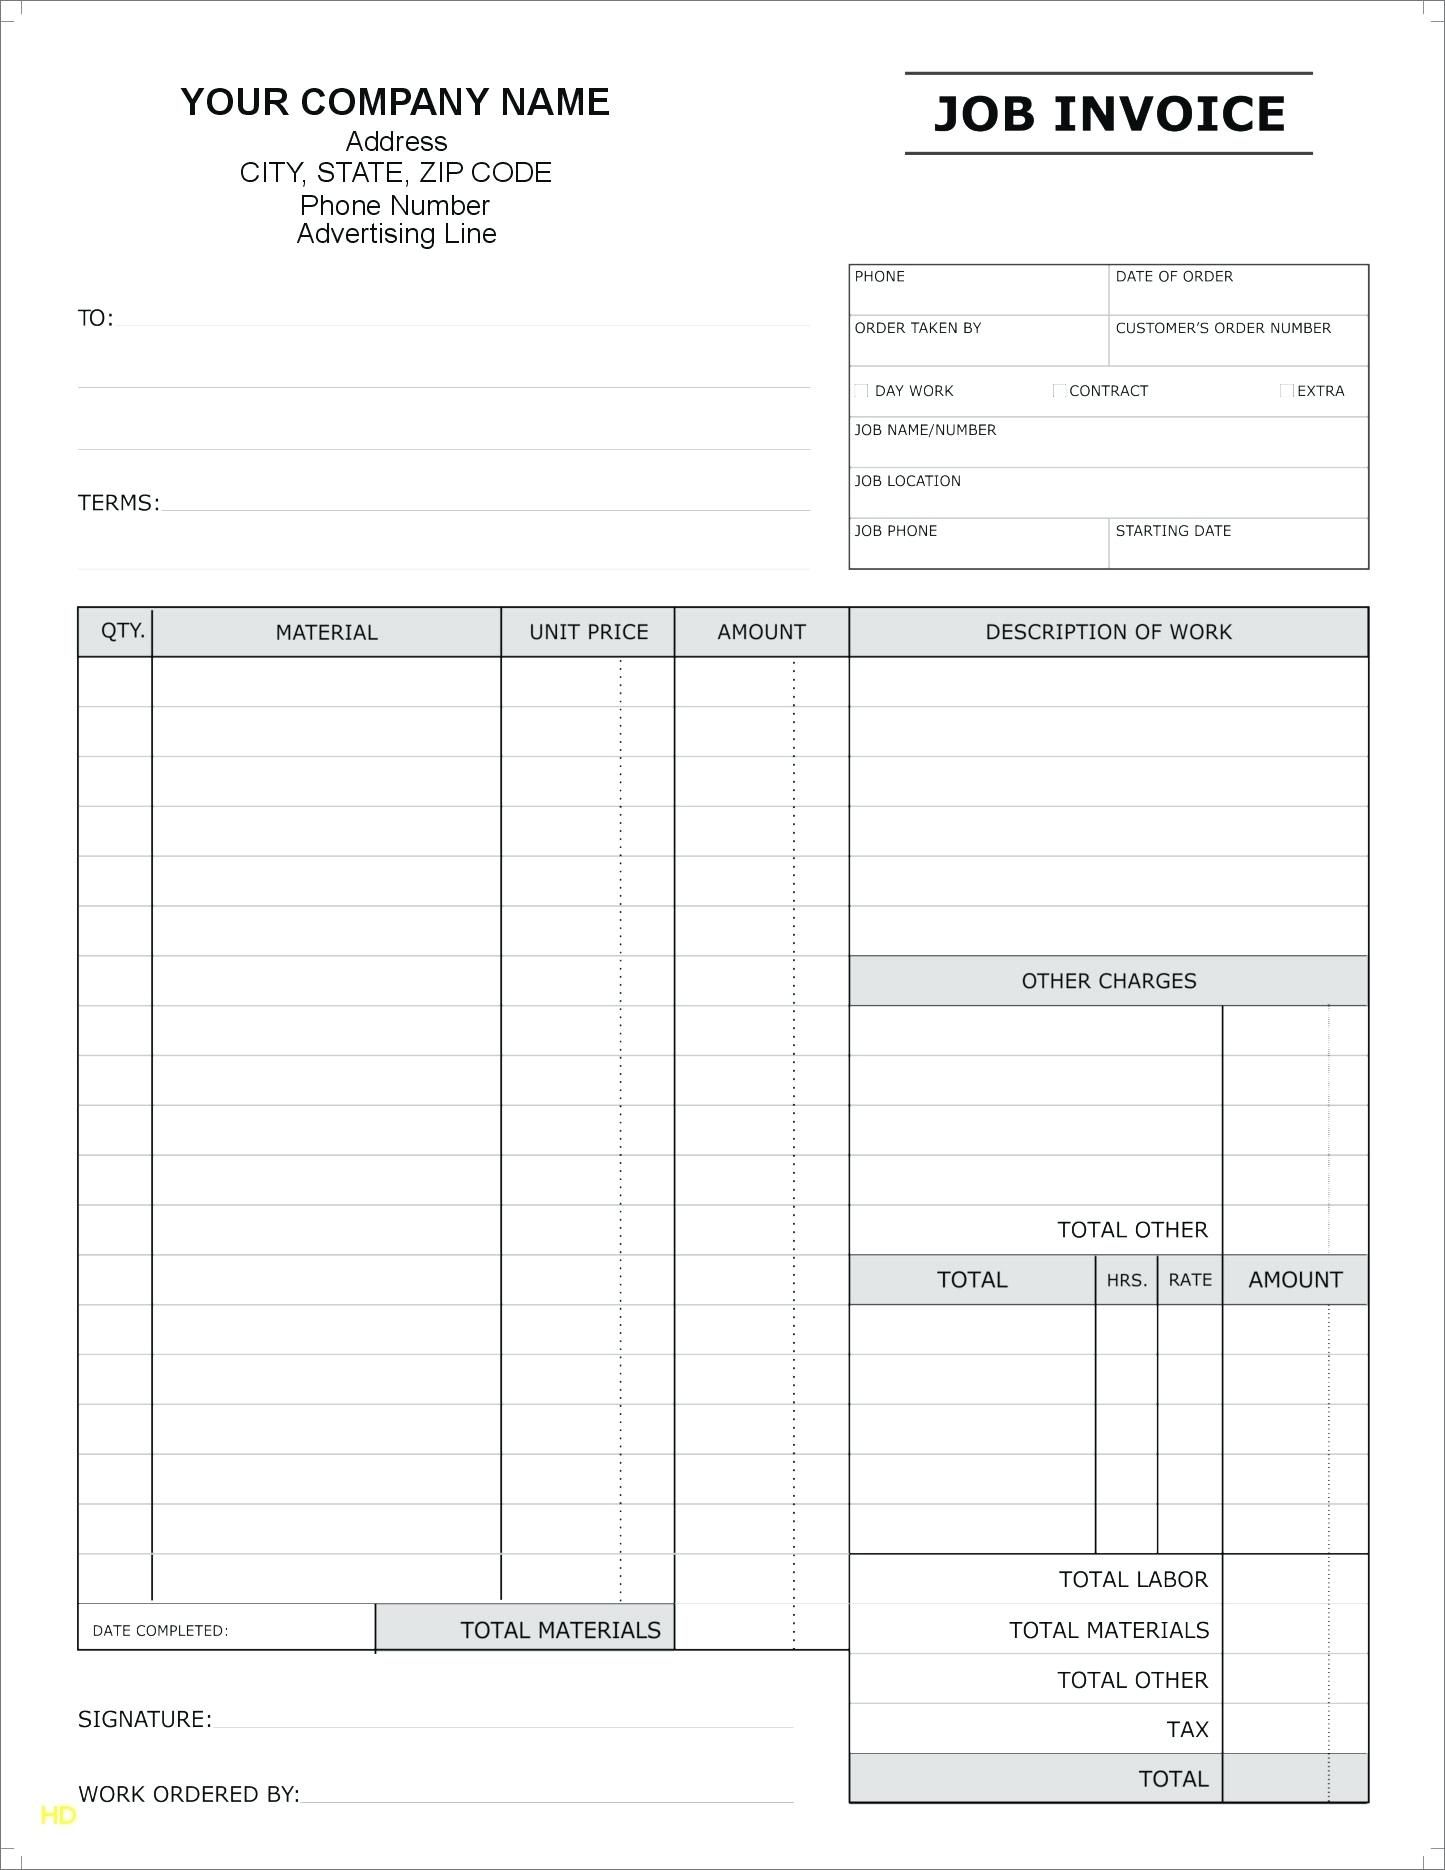 Blank Invoice Free Invoice Template Doc Download